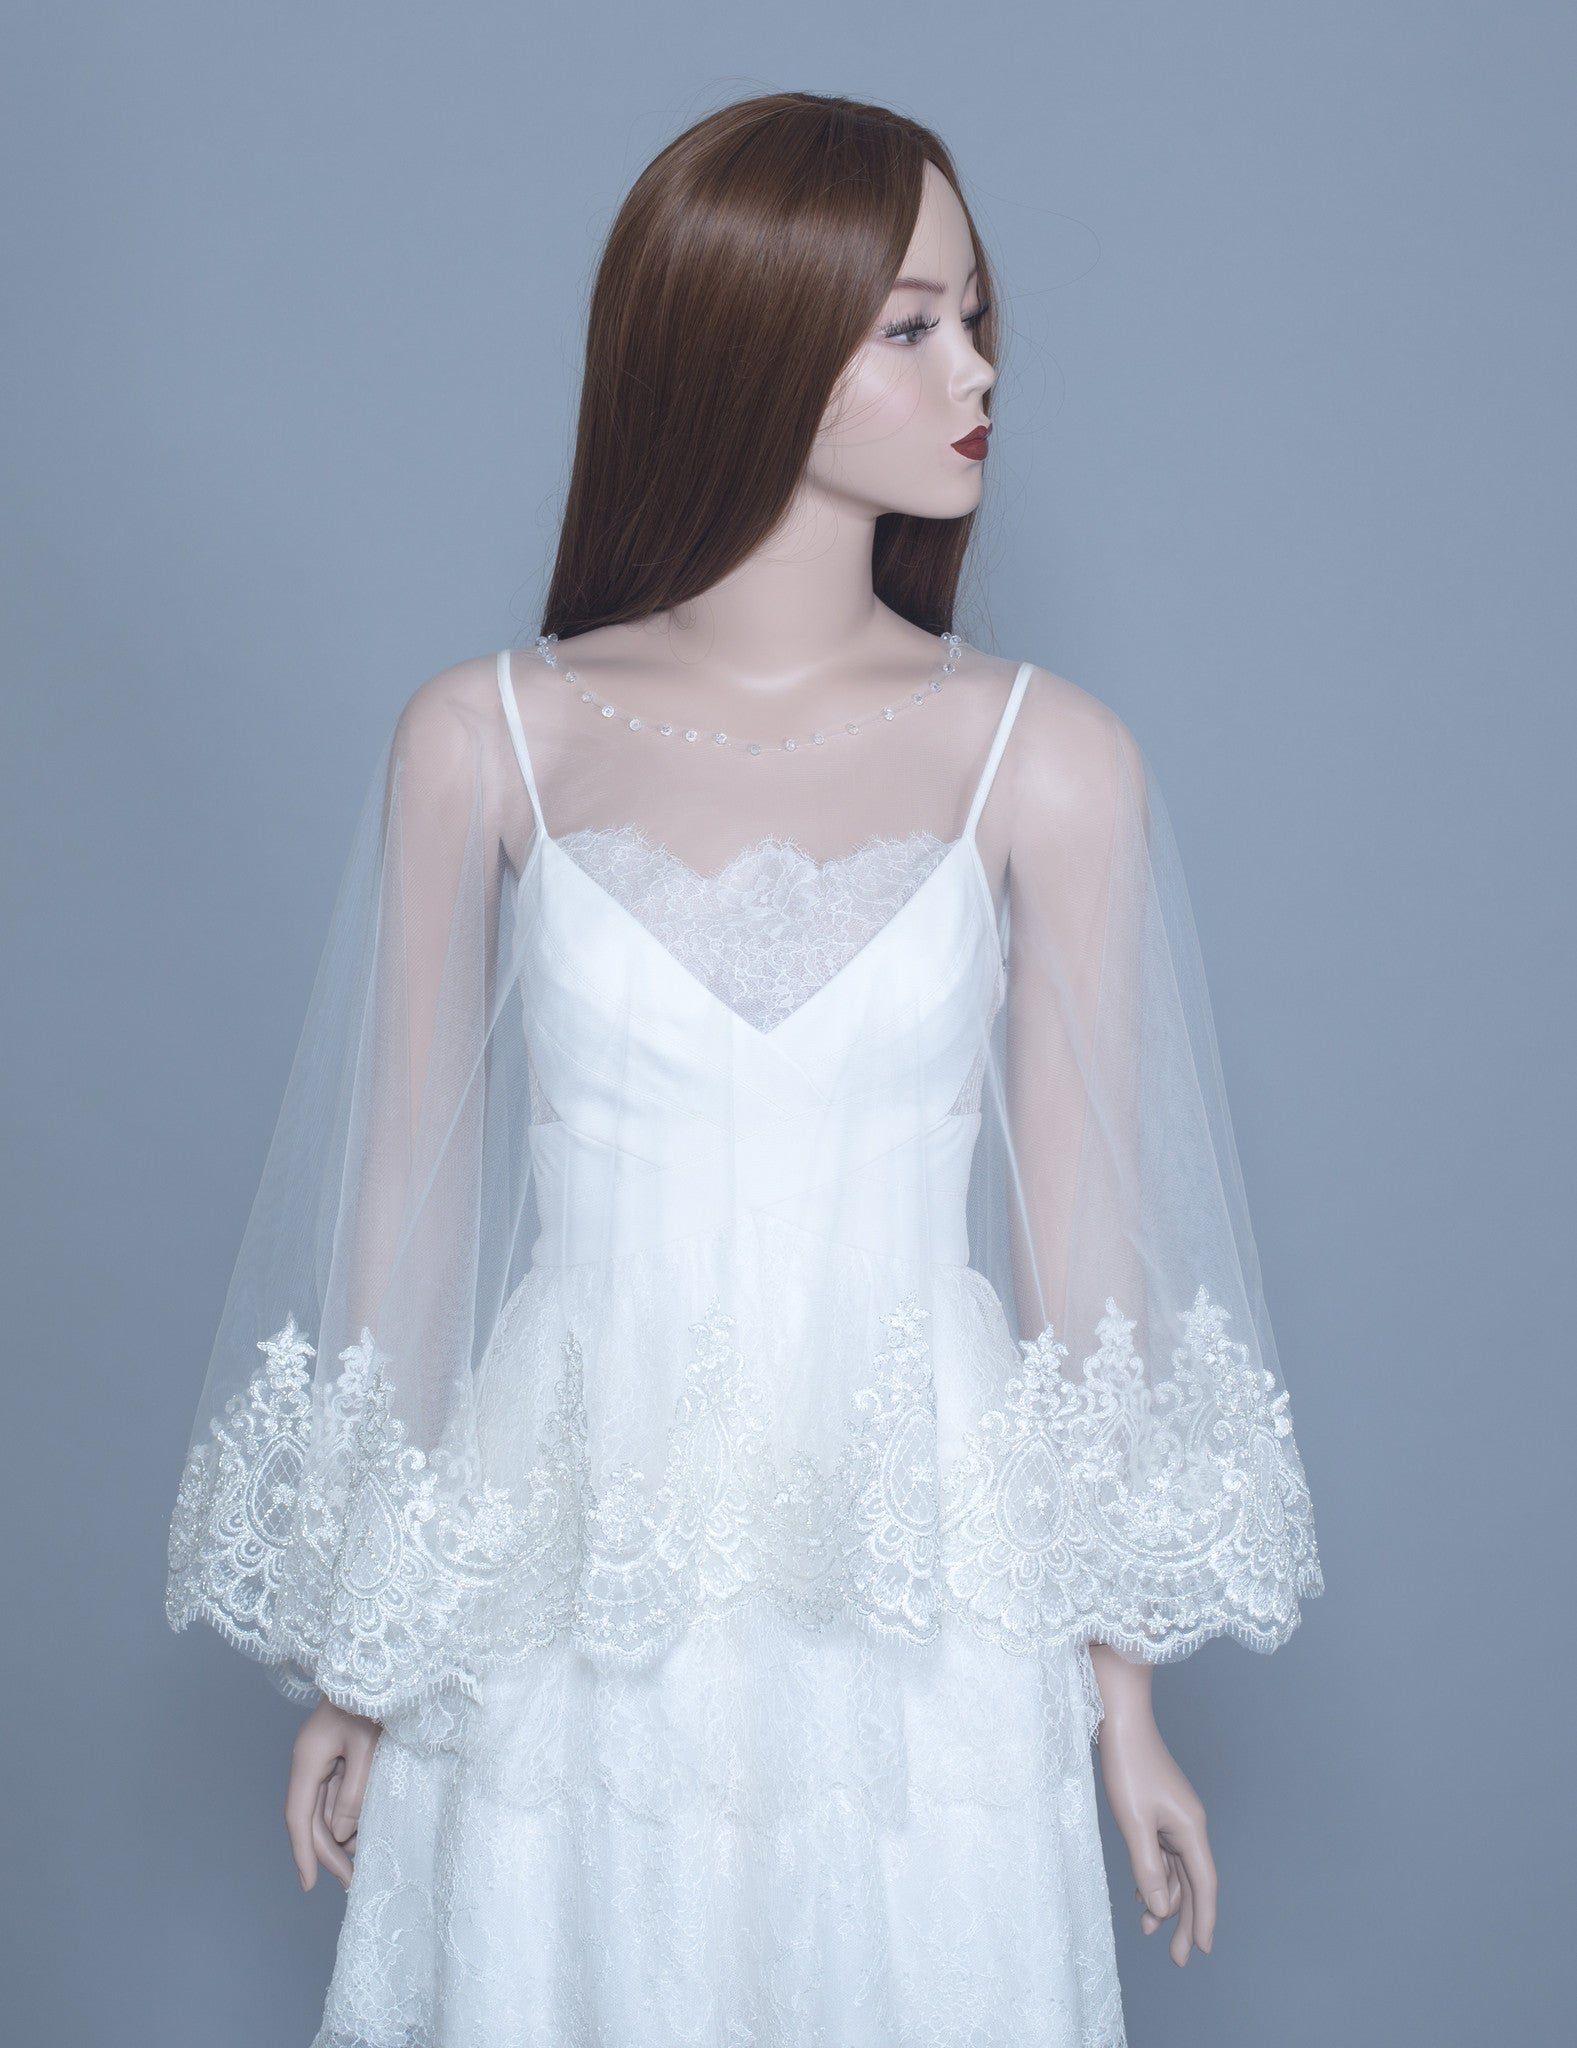 Lace Bridal Cape (#Leora) - Dream Dresses by P.M.N  - 1